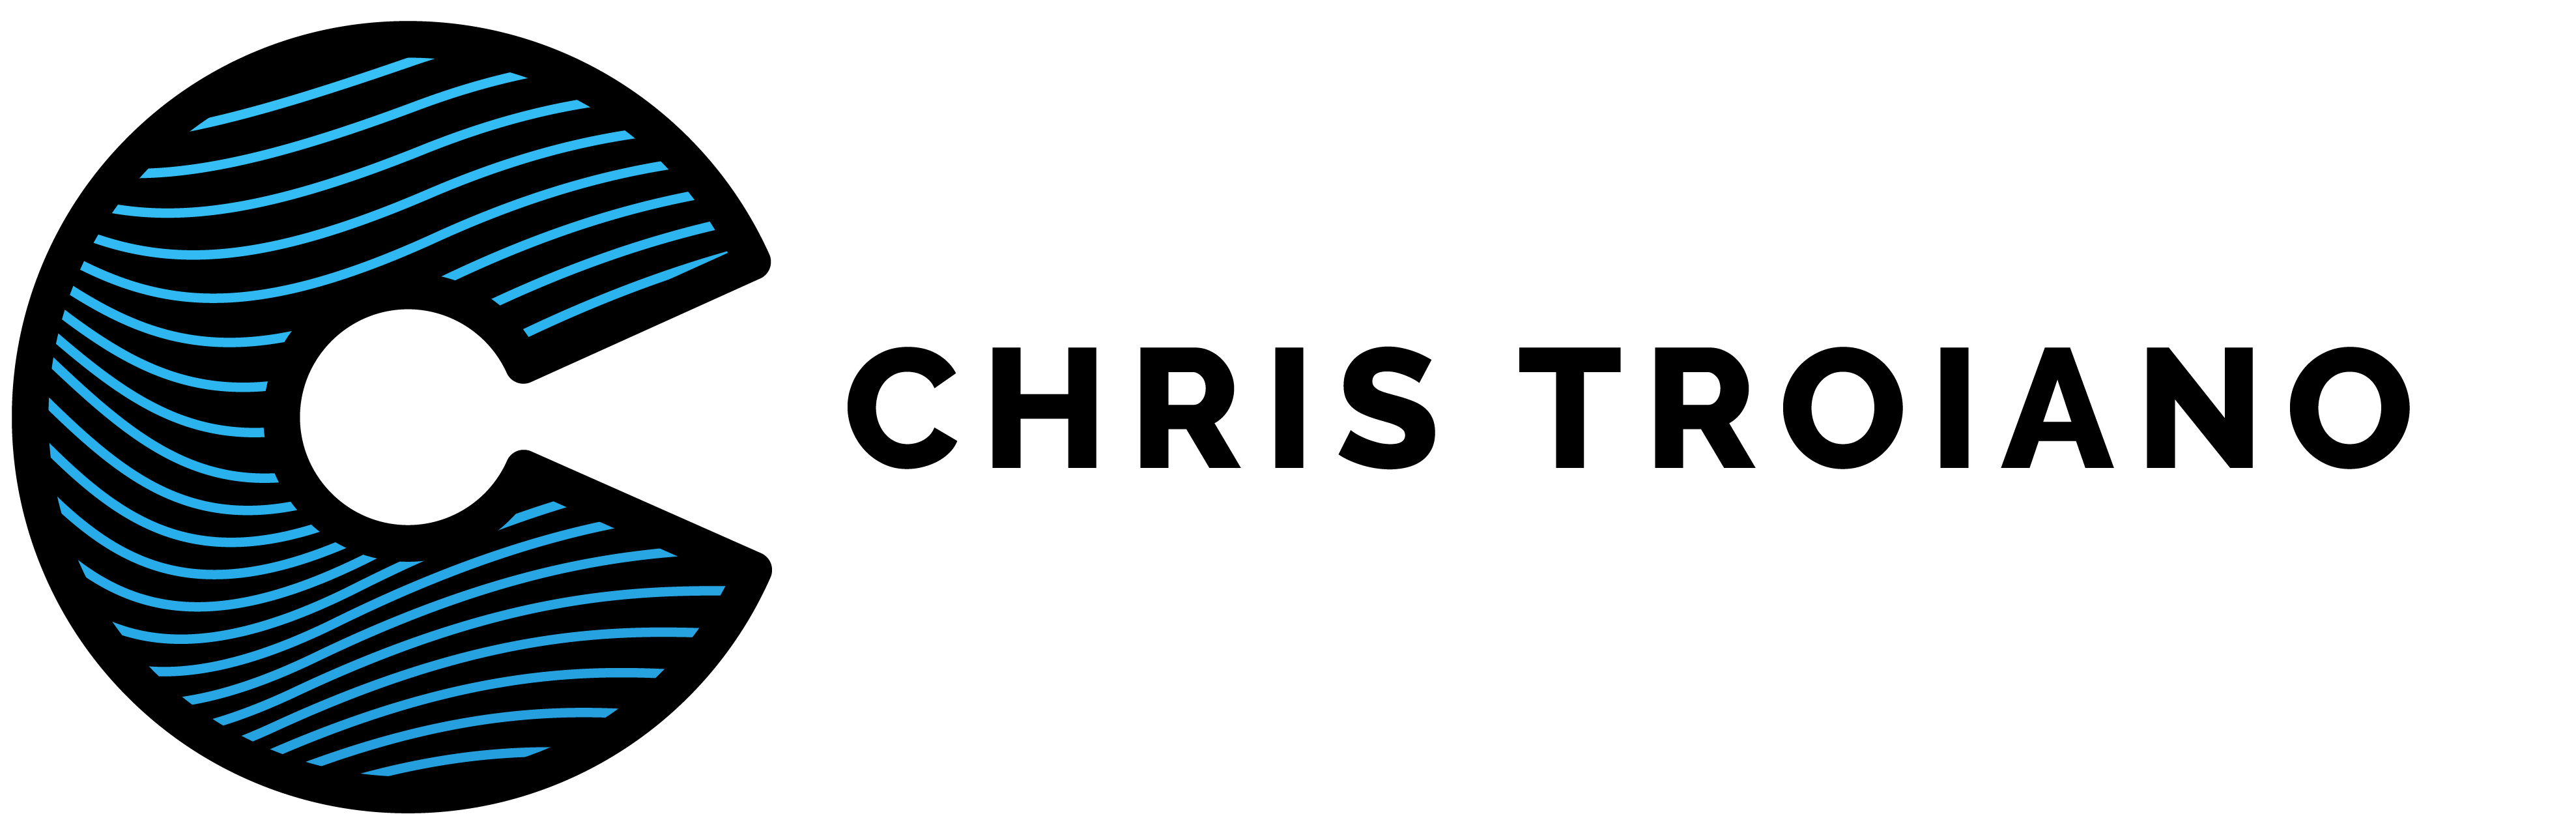 Chris Tro